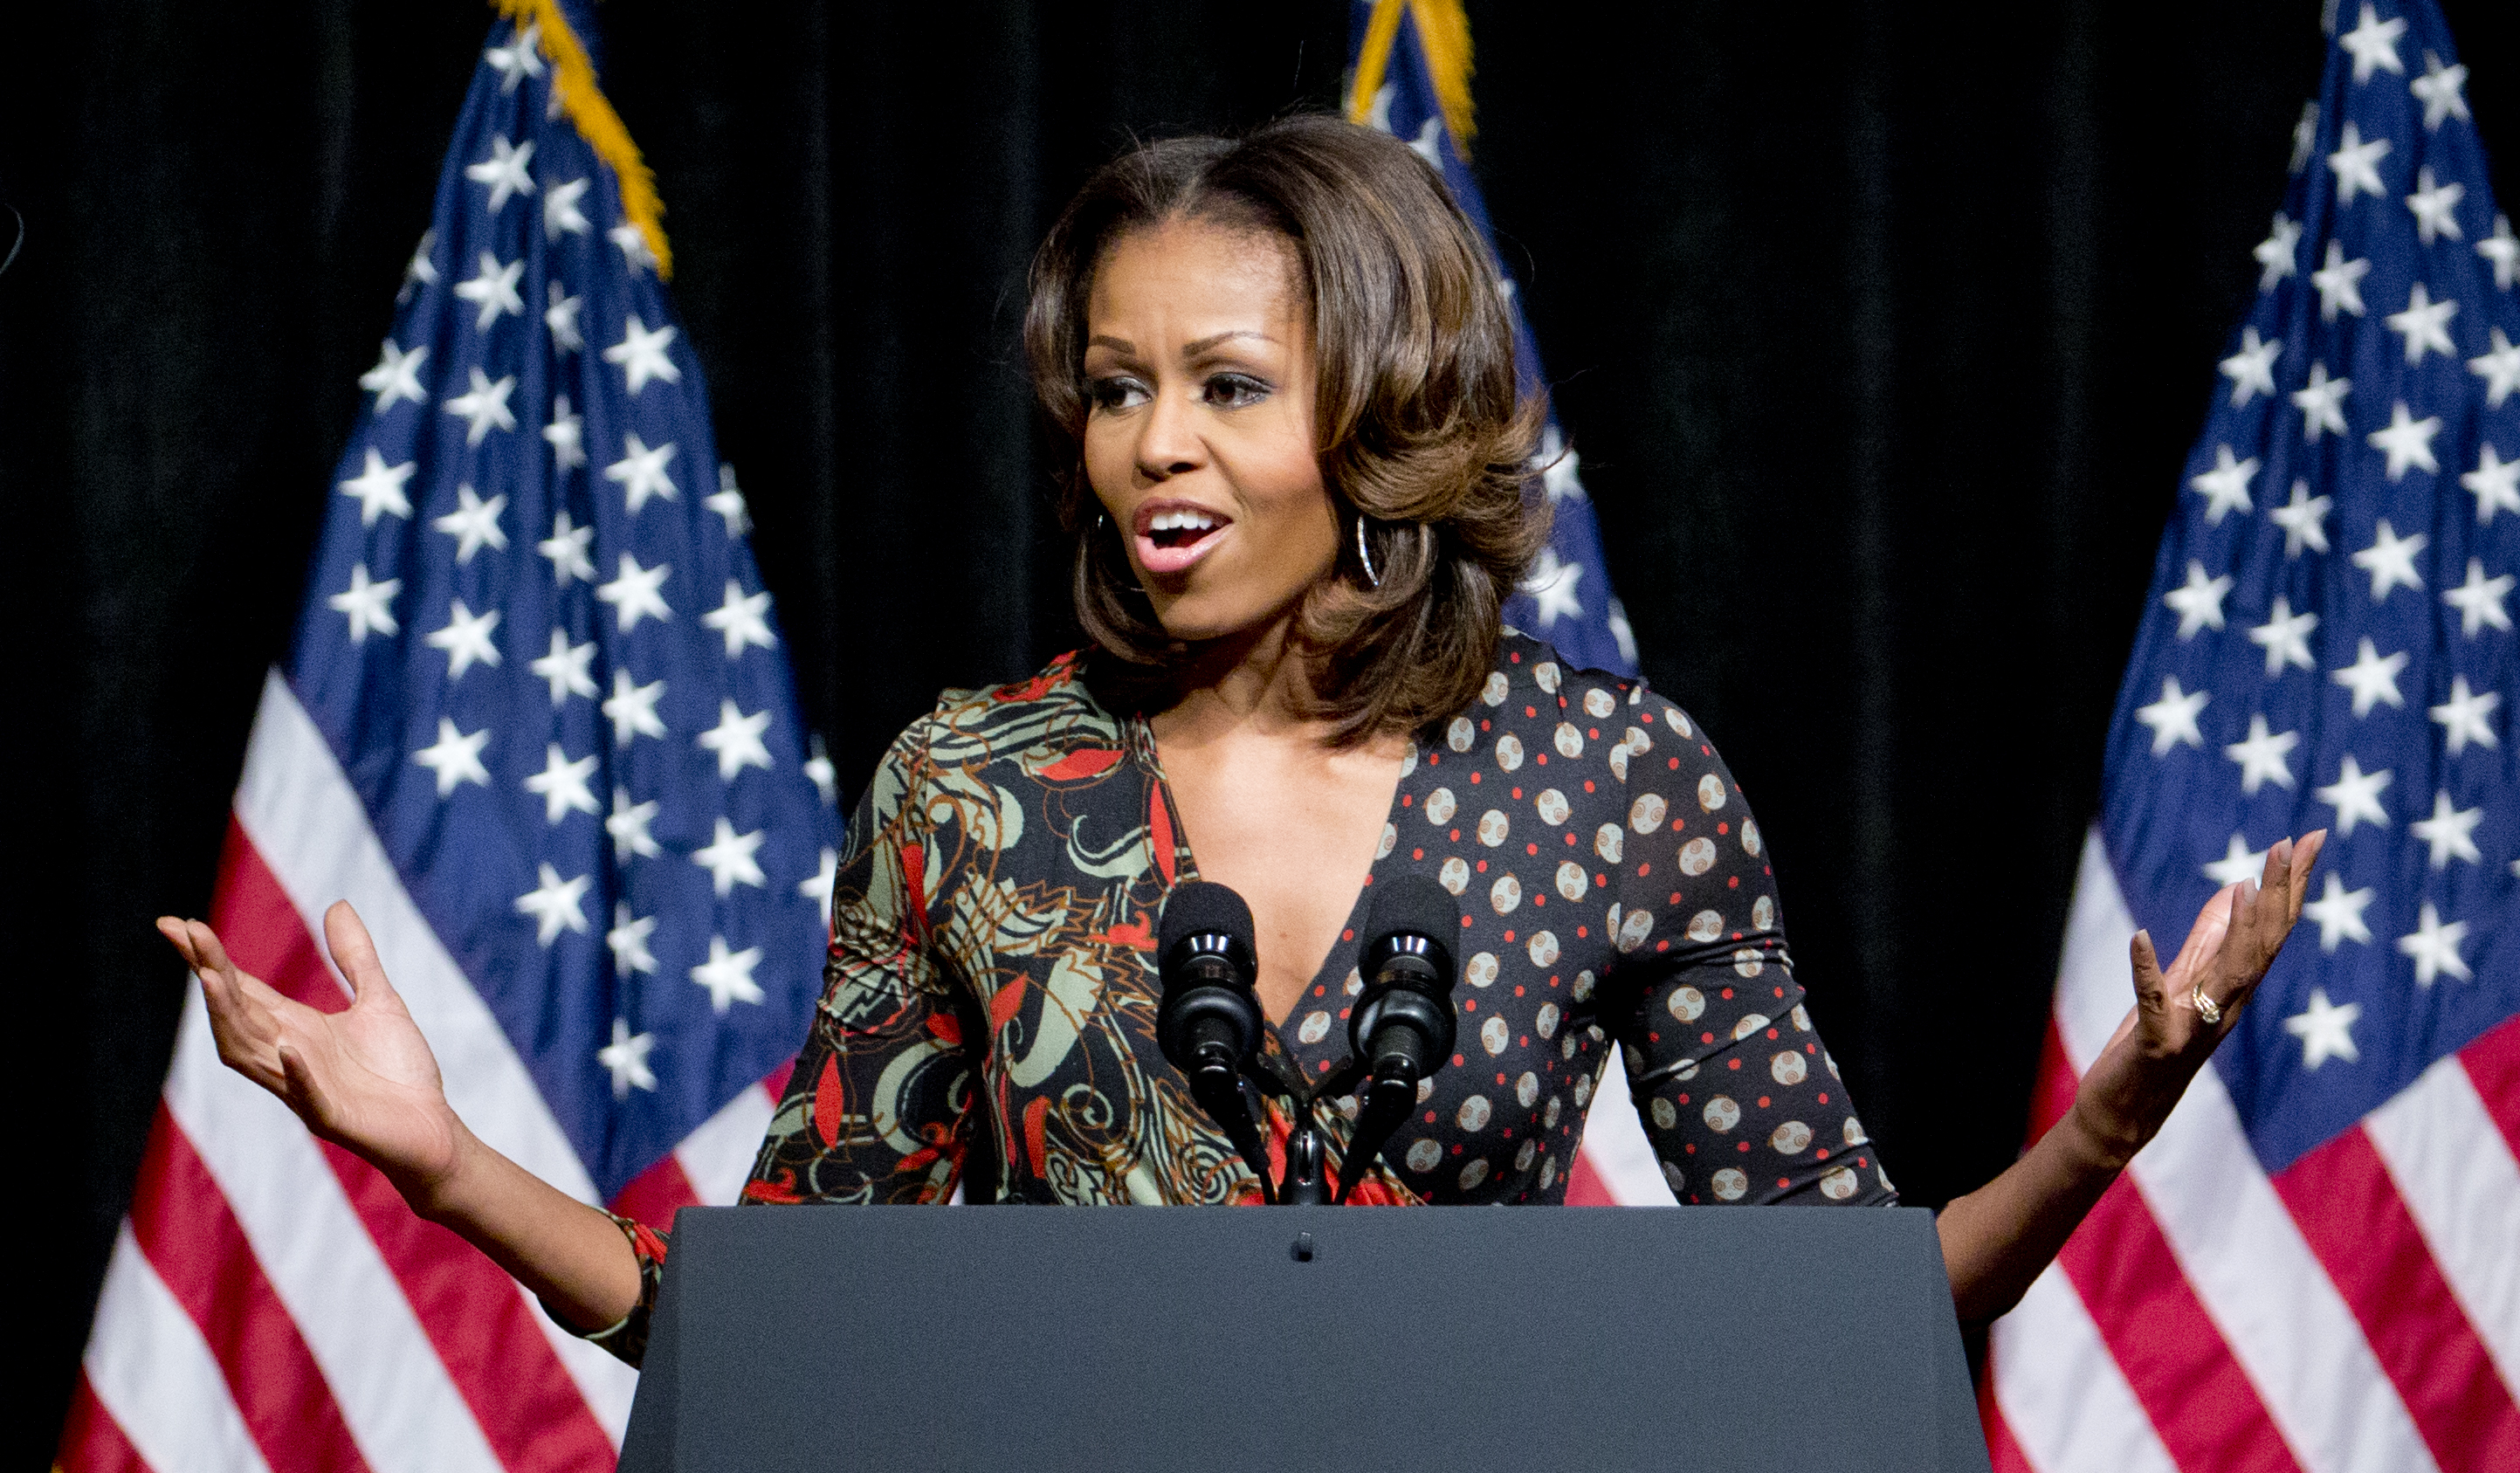 U.S. First lady Michelle Obama speaks to students at Bell Multicultural High School in Washington, D.C., on Nov. 11, 2013.